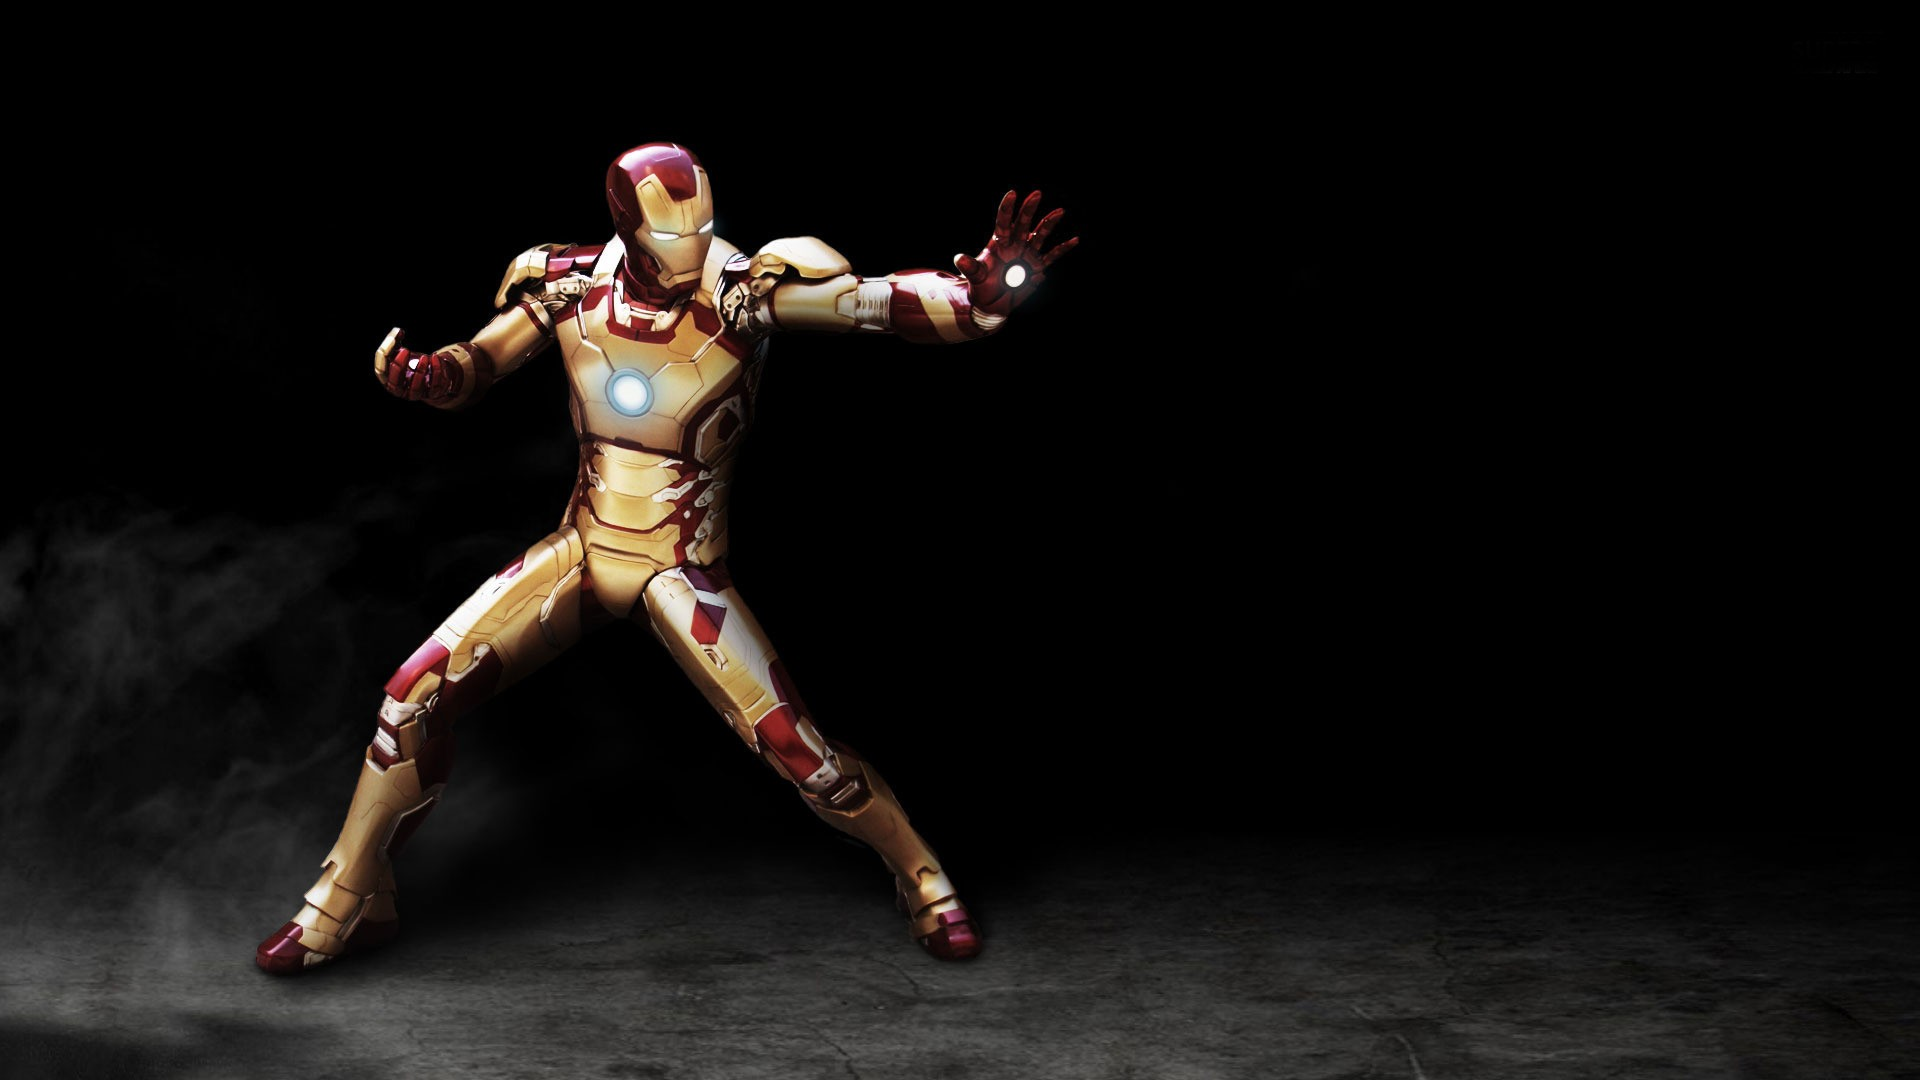 Iron Man Mark 42 Wallpaper HD